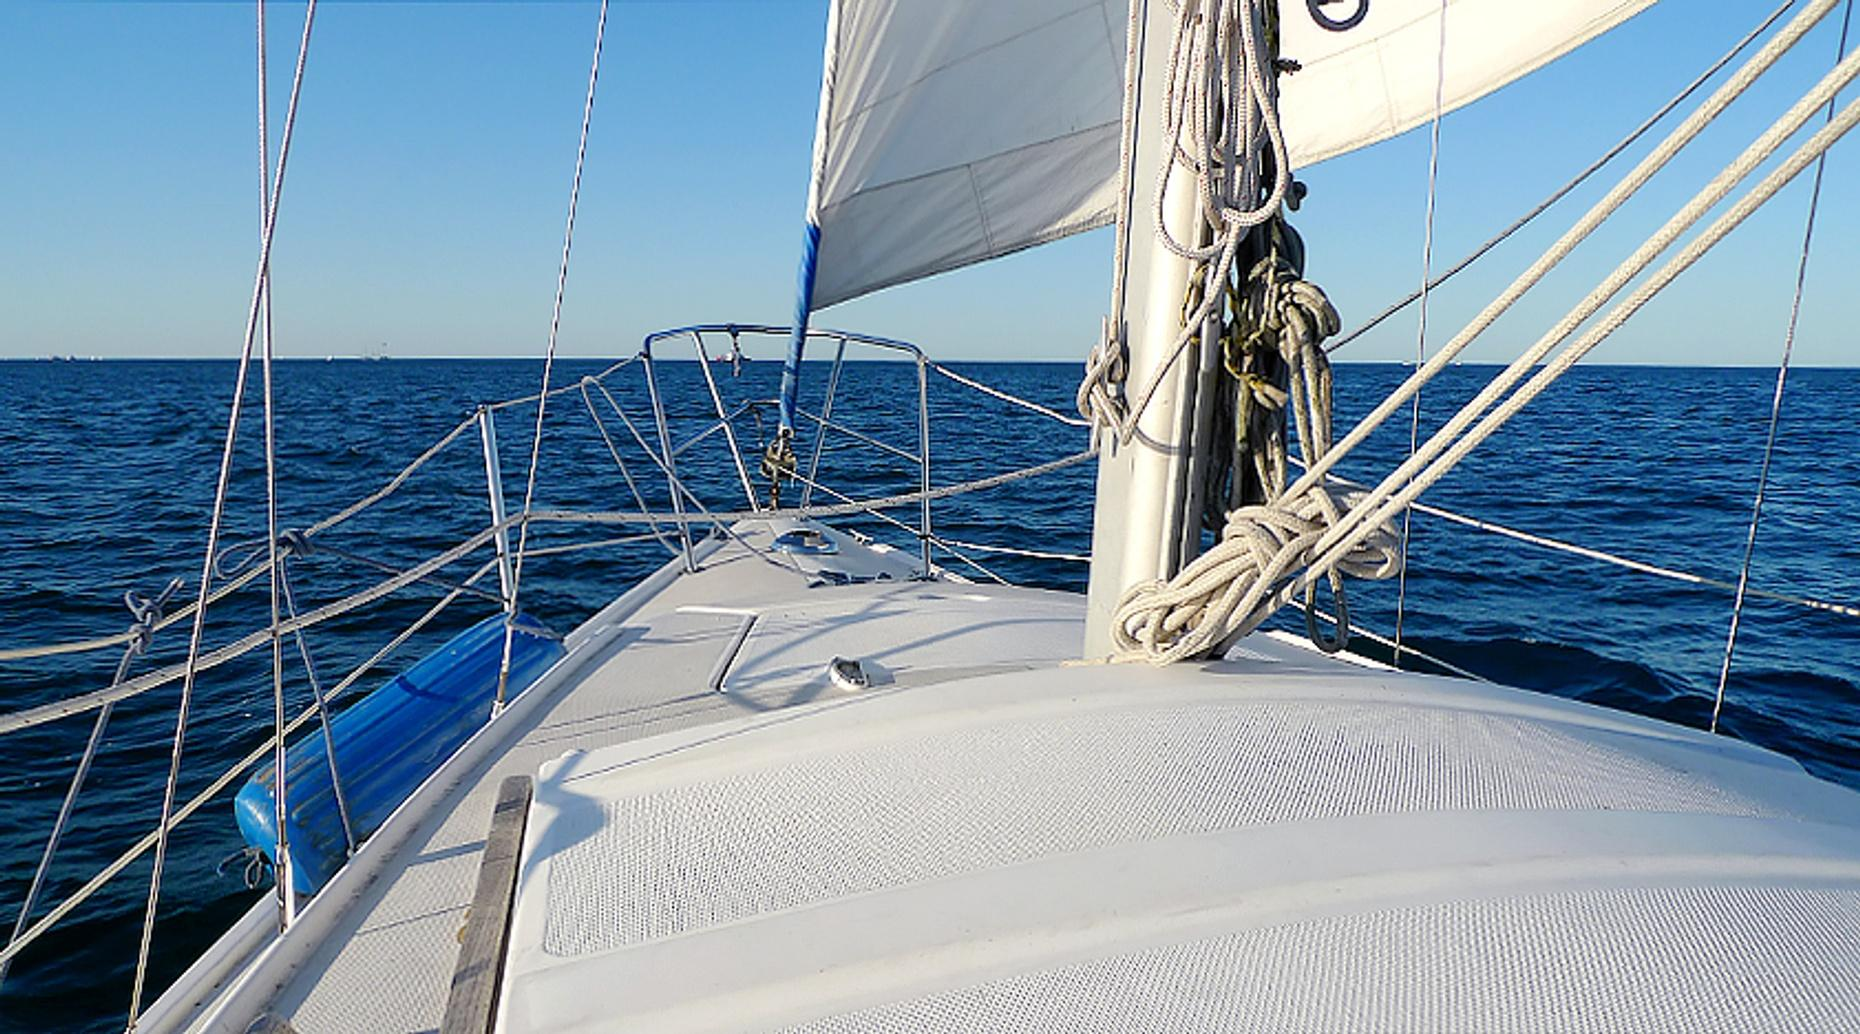 Afternoon Sailing Excursion in Punta Cana